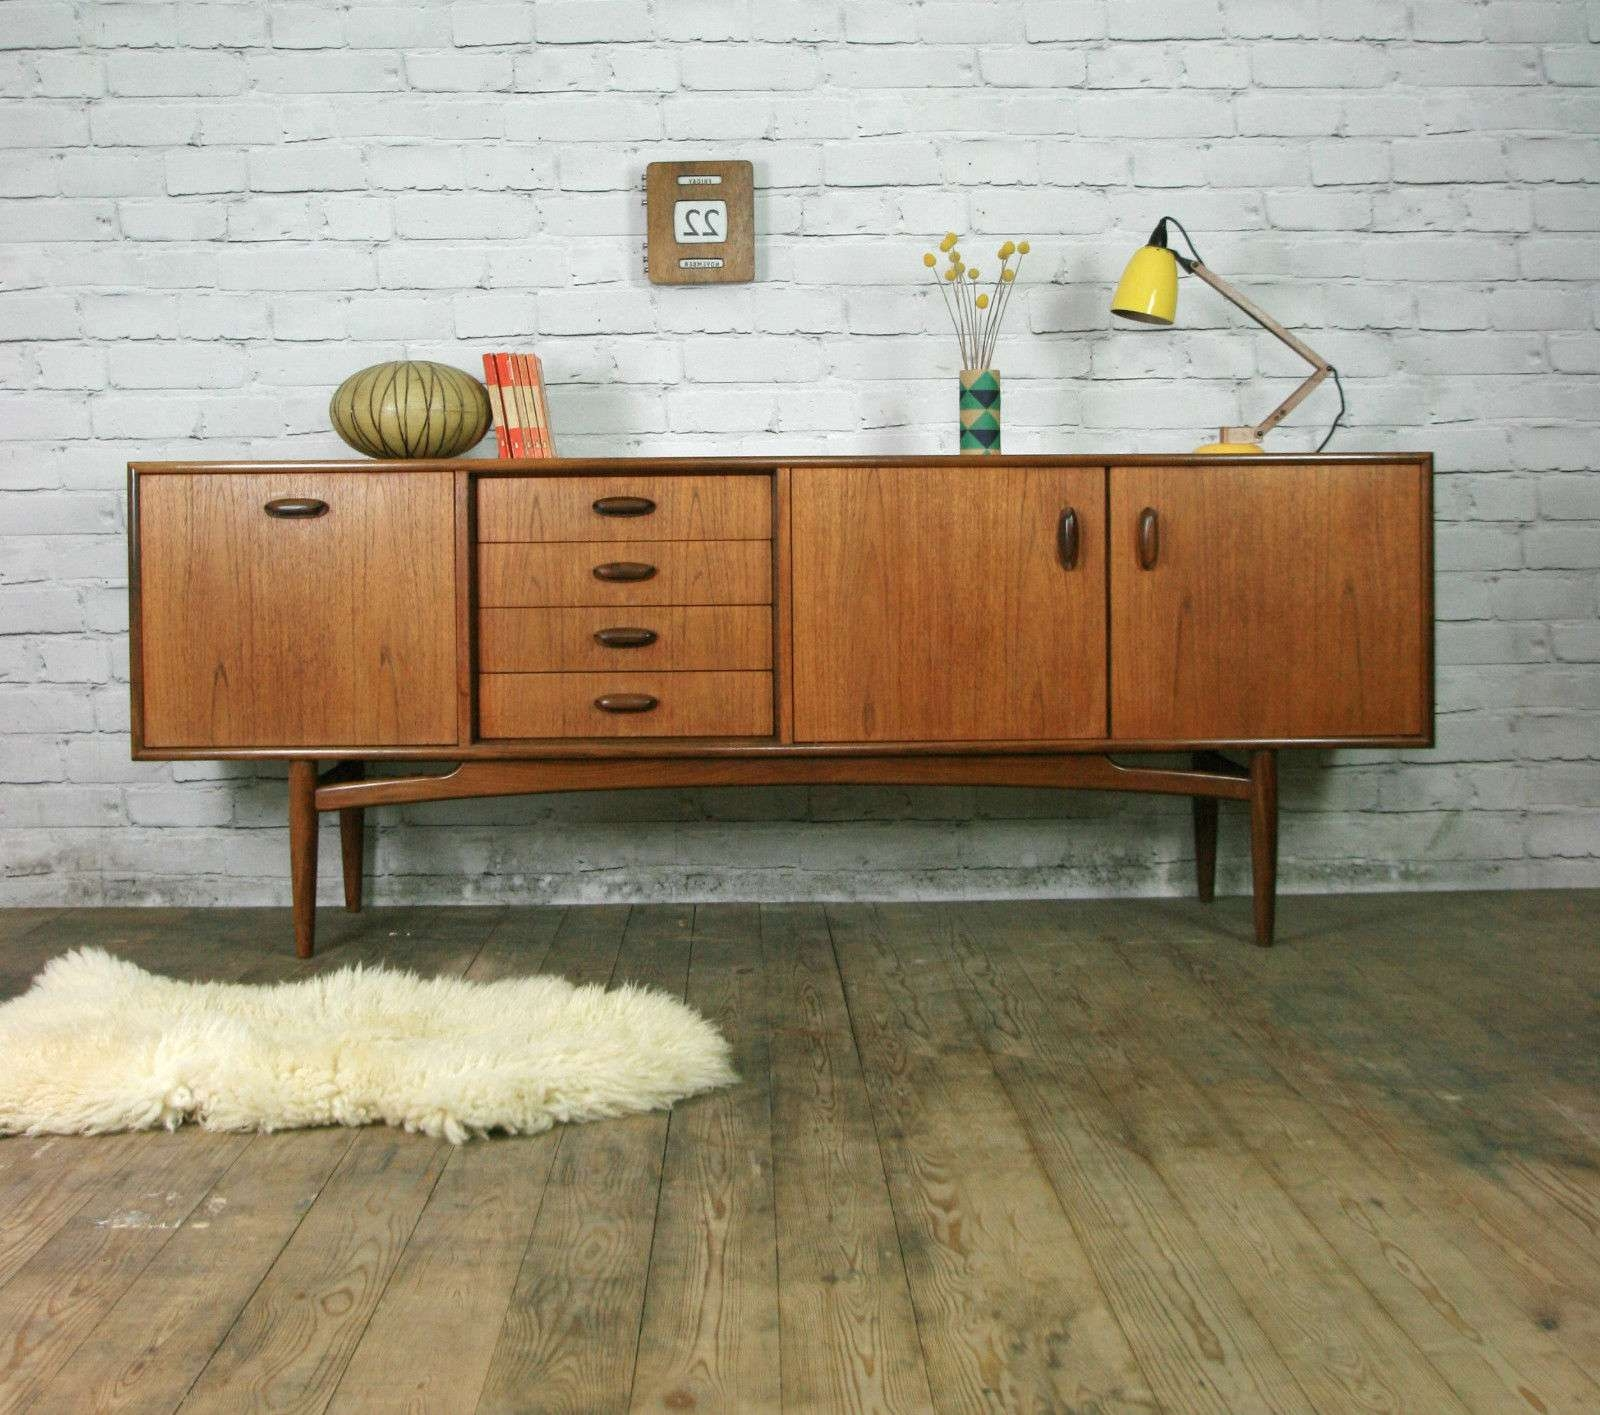 Retro Scandinavian Chair, Vintage Sideboards And Buffets Ideas Within Danish Retro Sideboards (View 14 of 20)